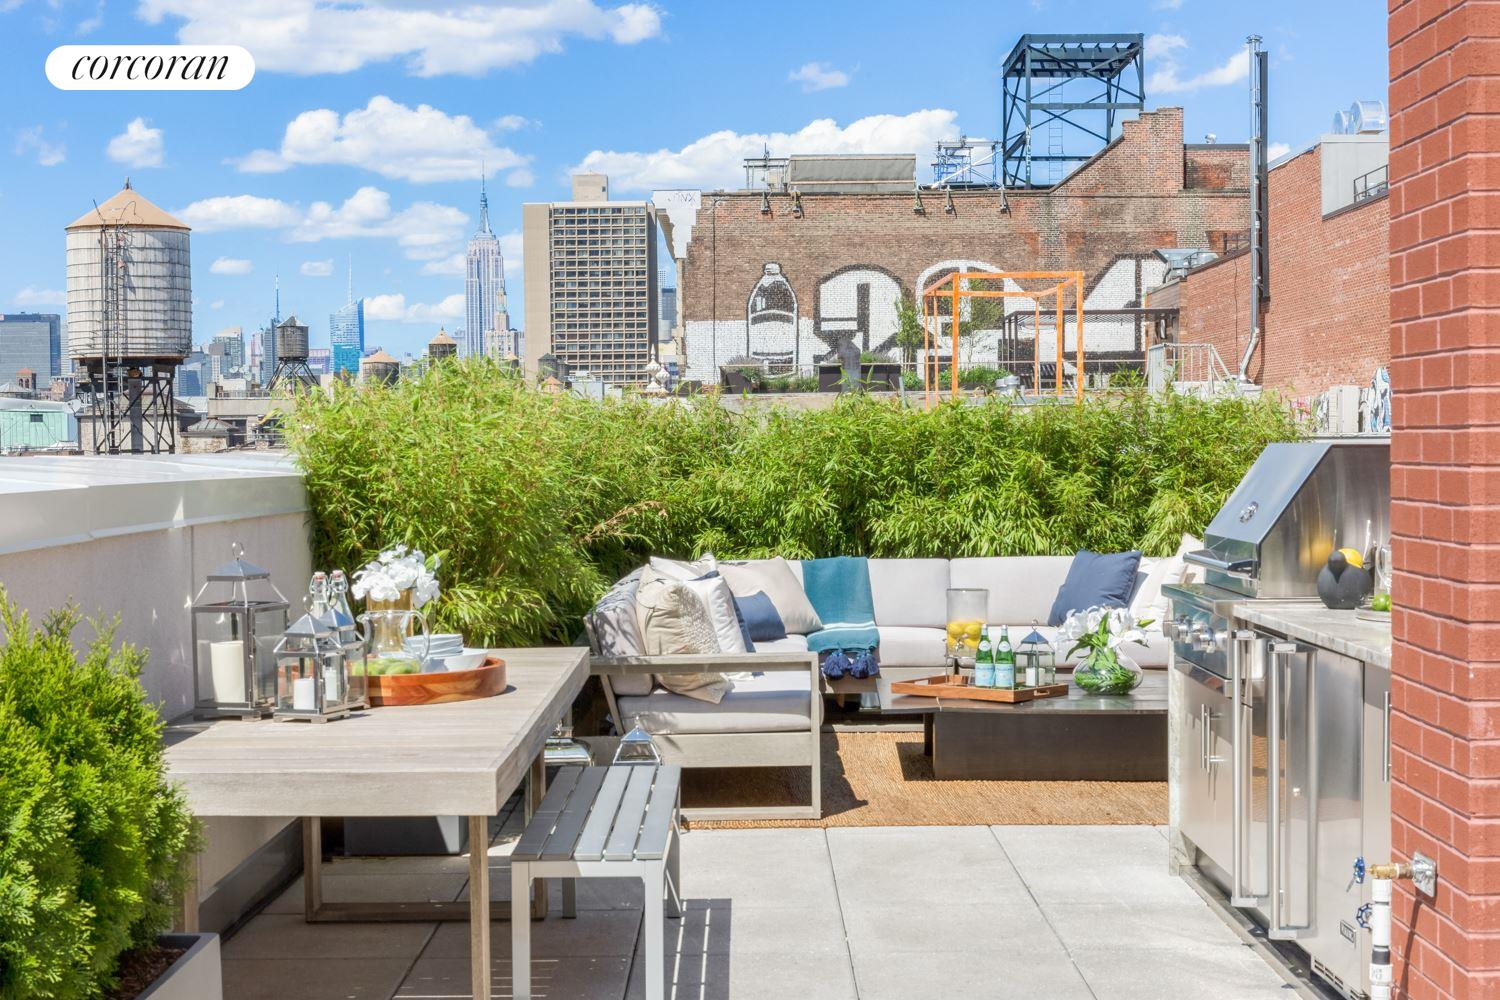 52 WOOSTER ST, PH, Outdoor Space